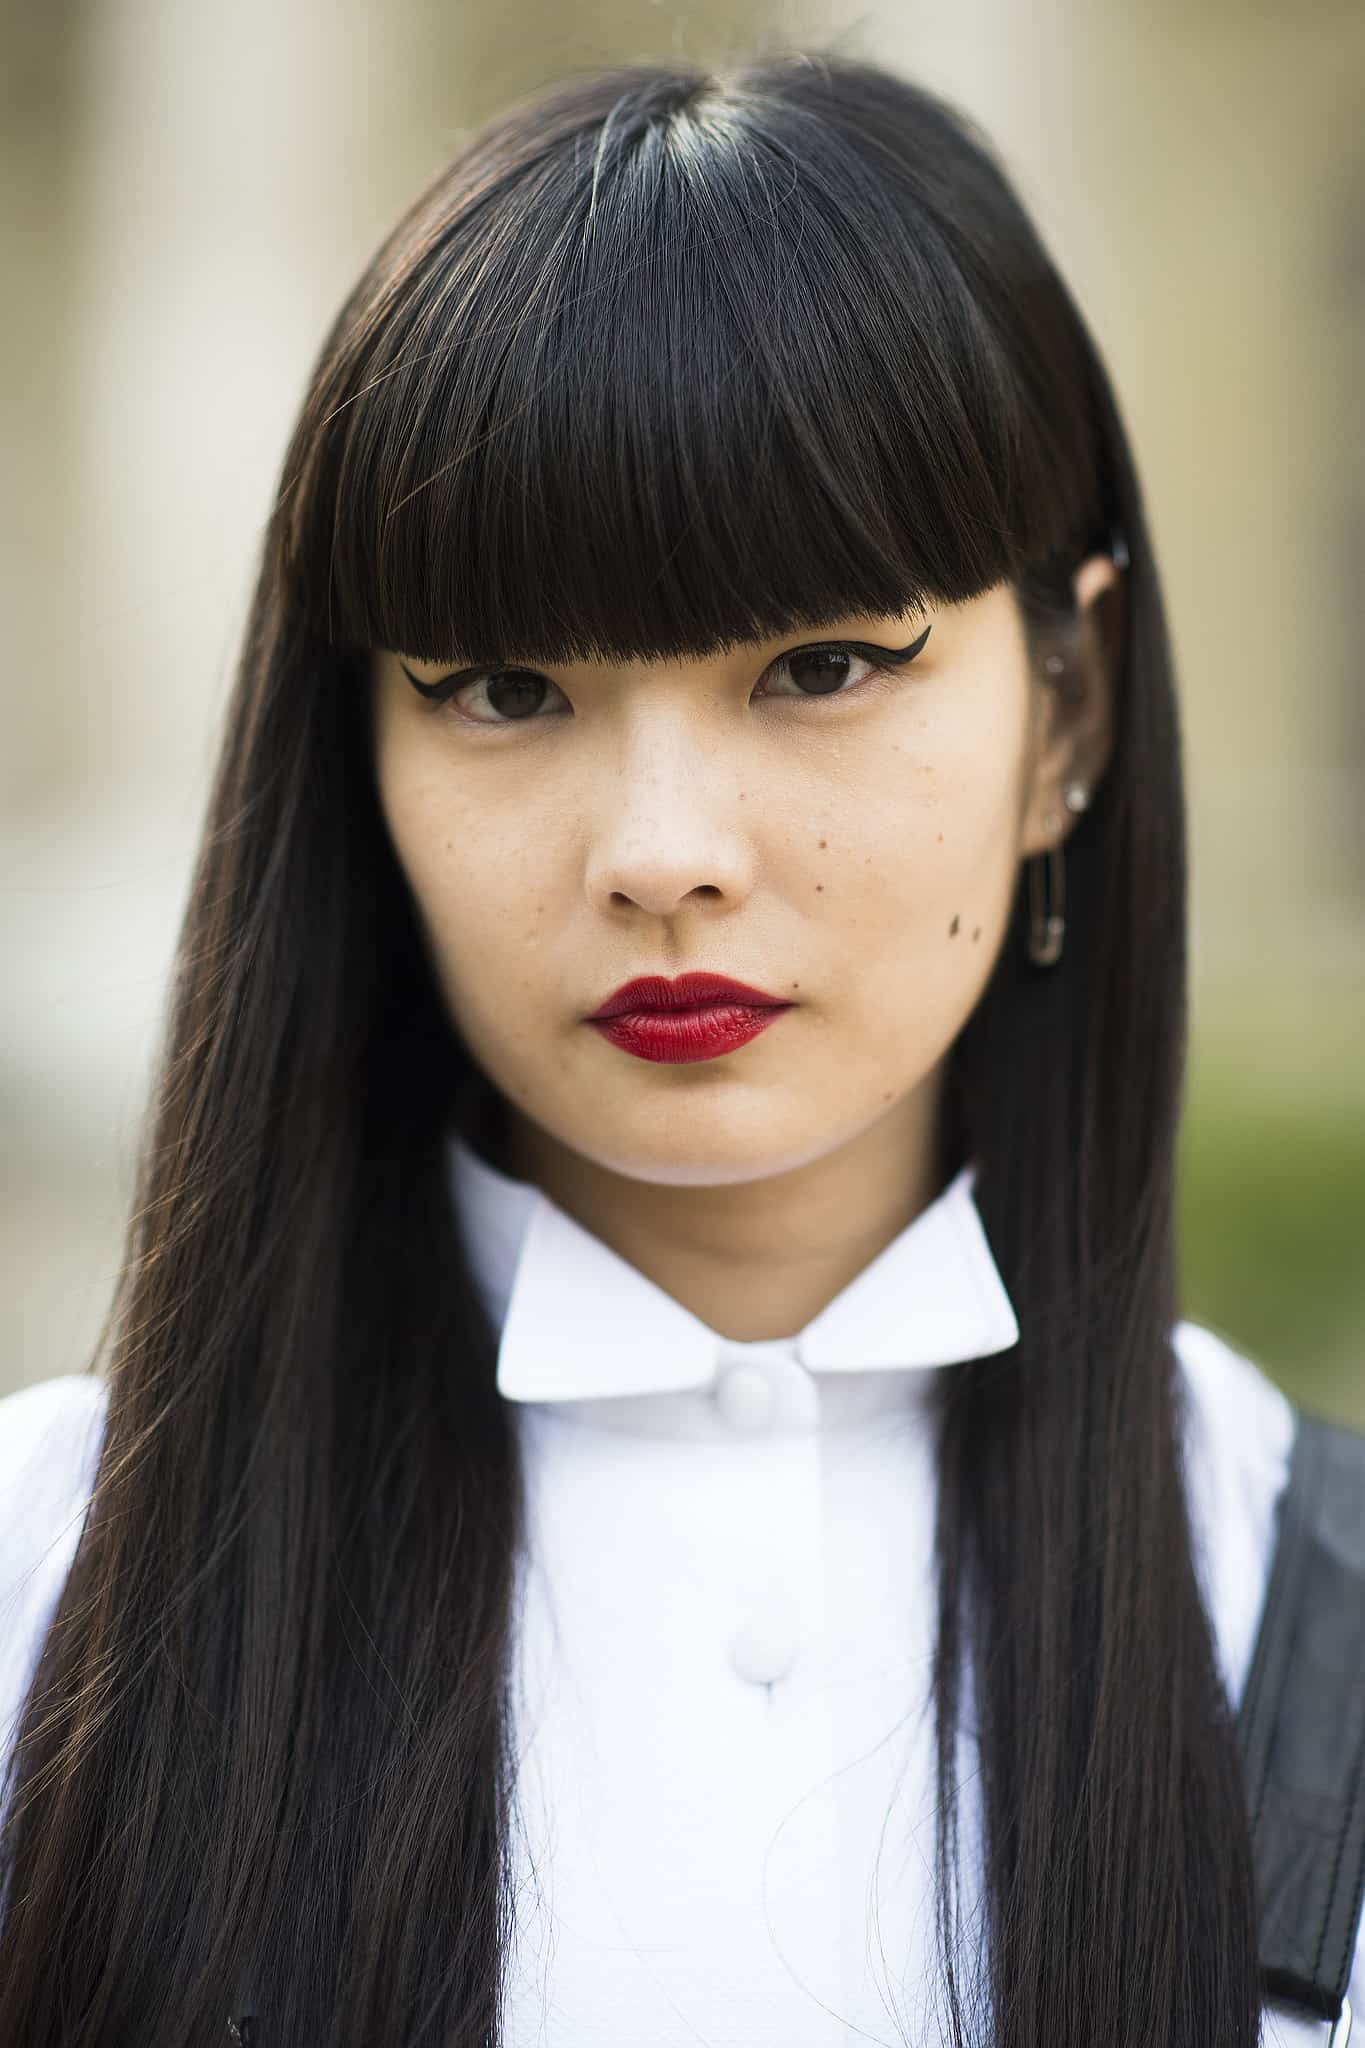 4 BANGS Hairstyles: To Bang or Not to Bang? | Fashion Tag Blog